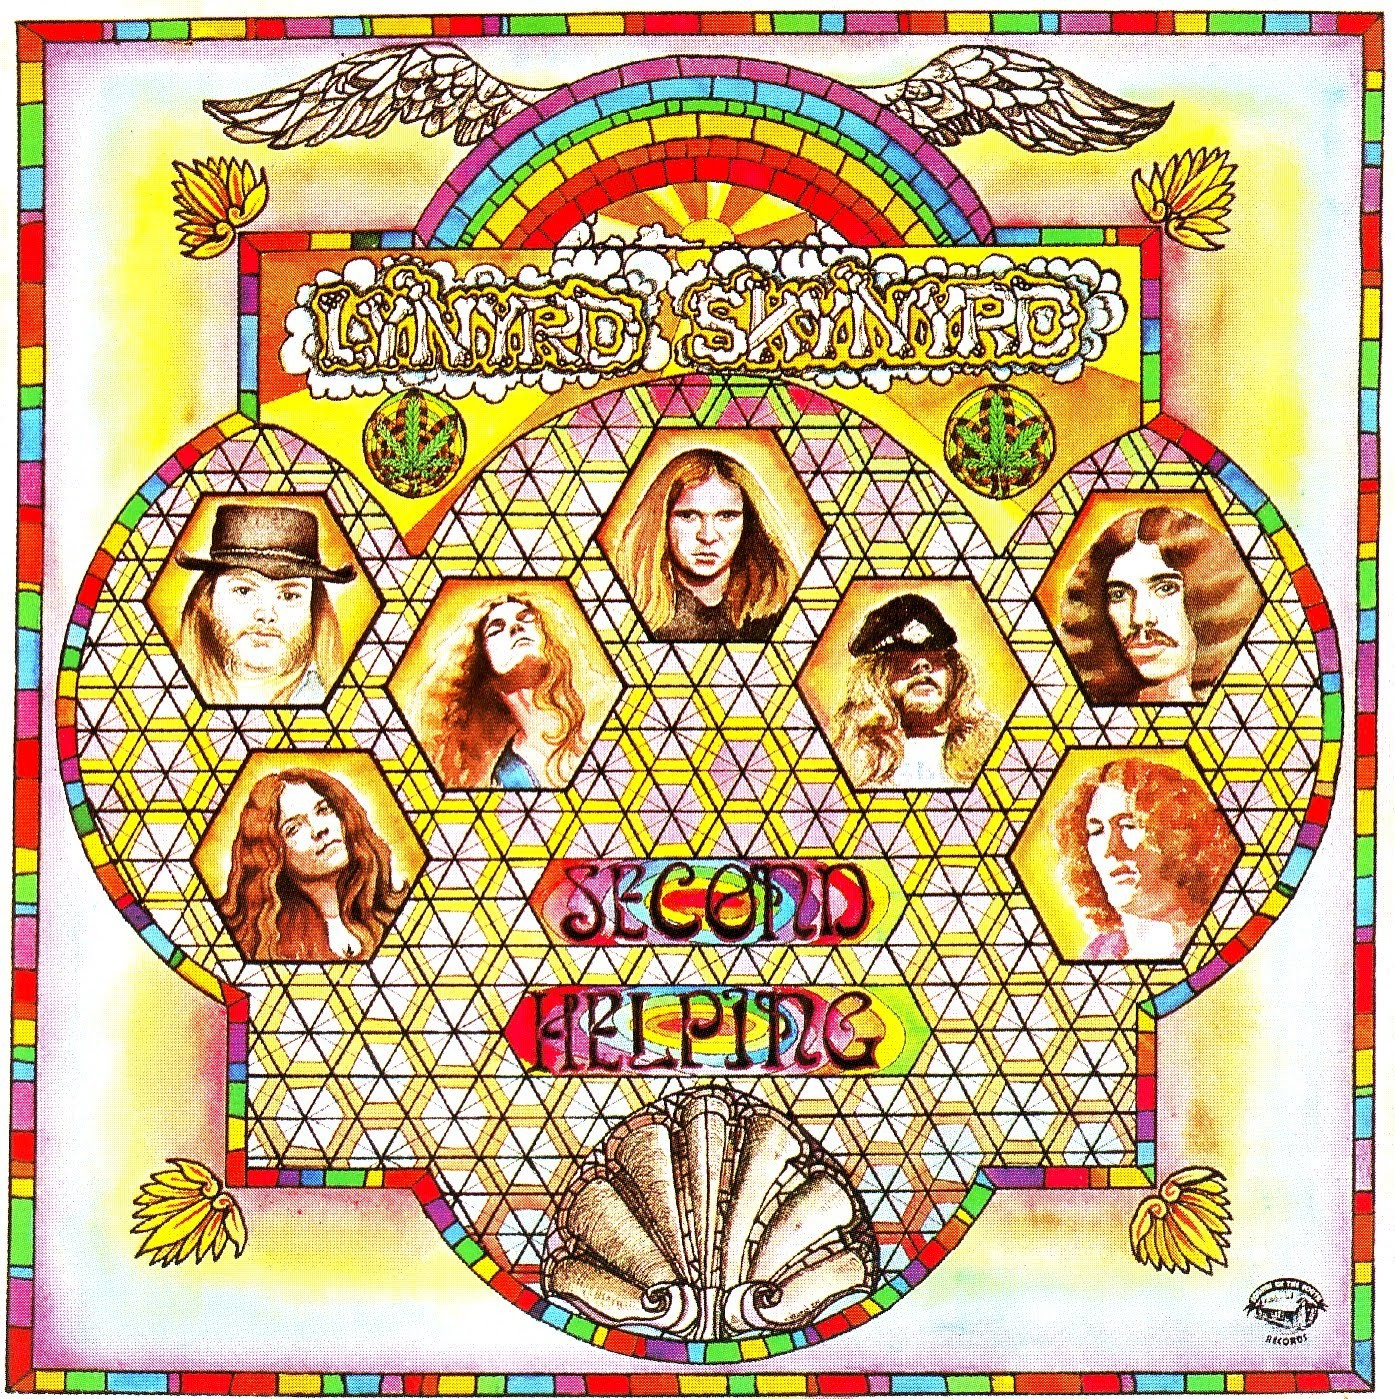 Sweet home alabama is a song by southern rock band lynyrd skynyrd that first appeared in 1974 on their second album, second helping. Turn It Up 40 Years Of Sweet Home Alabama Consequence